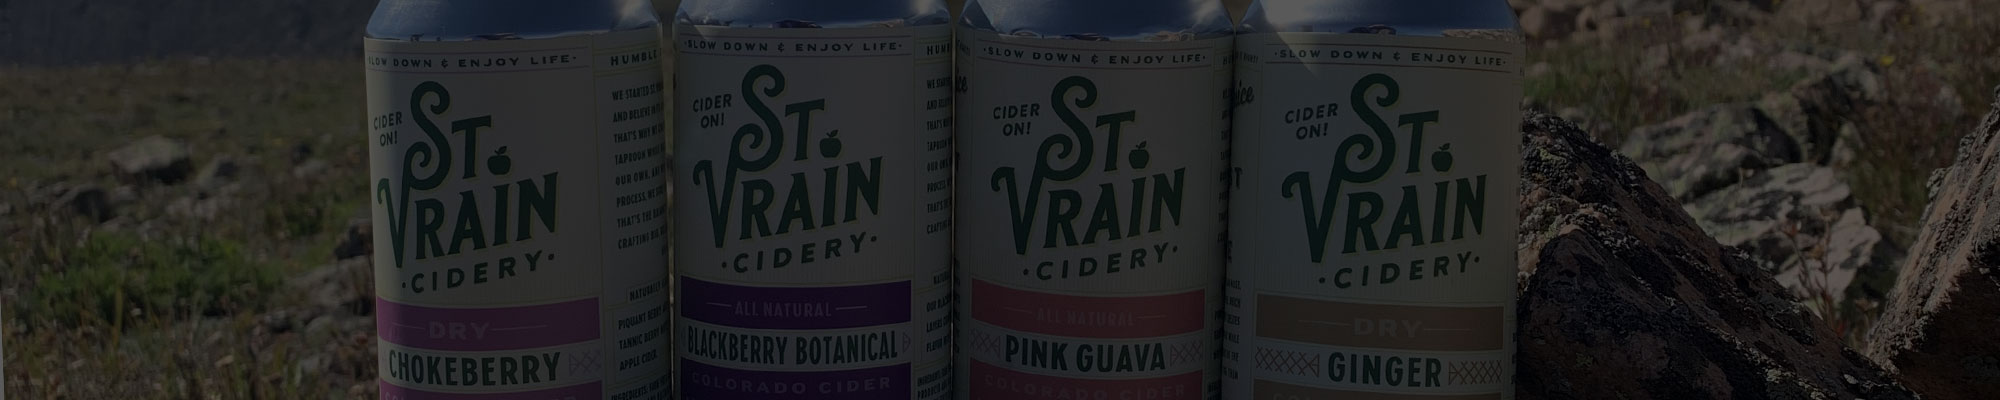 St. Vrain Cidery cans in the Colorado mountains